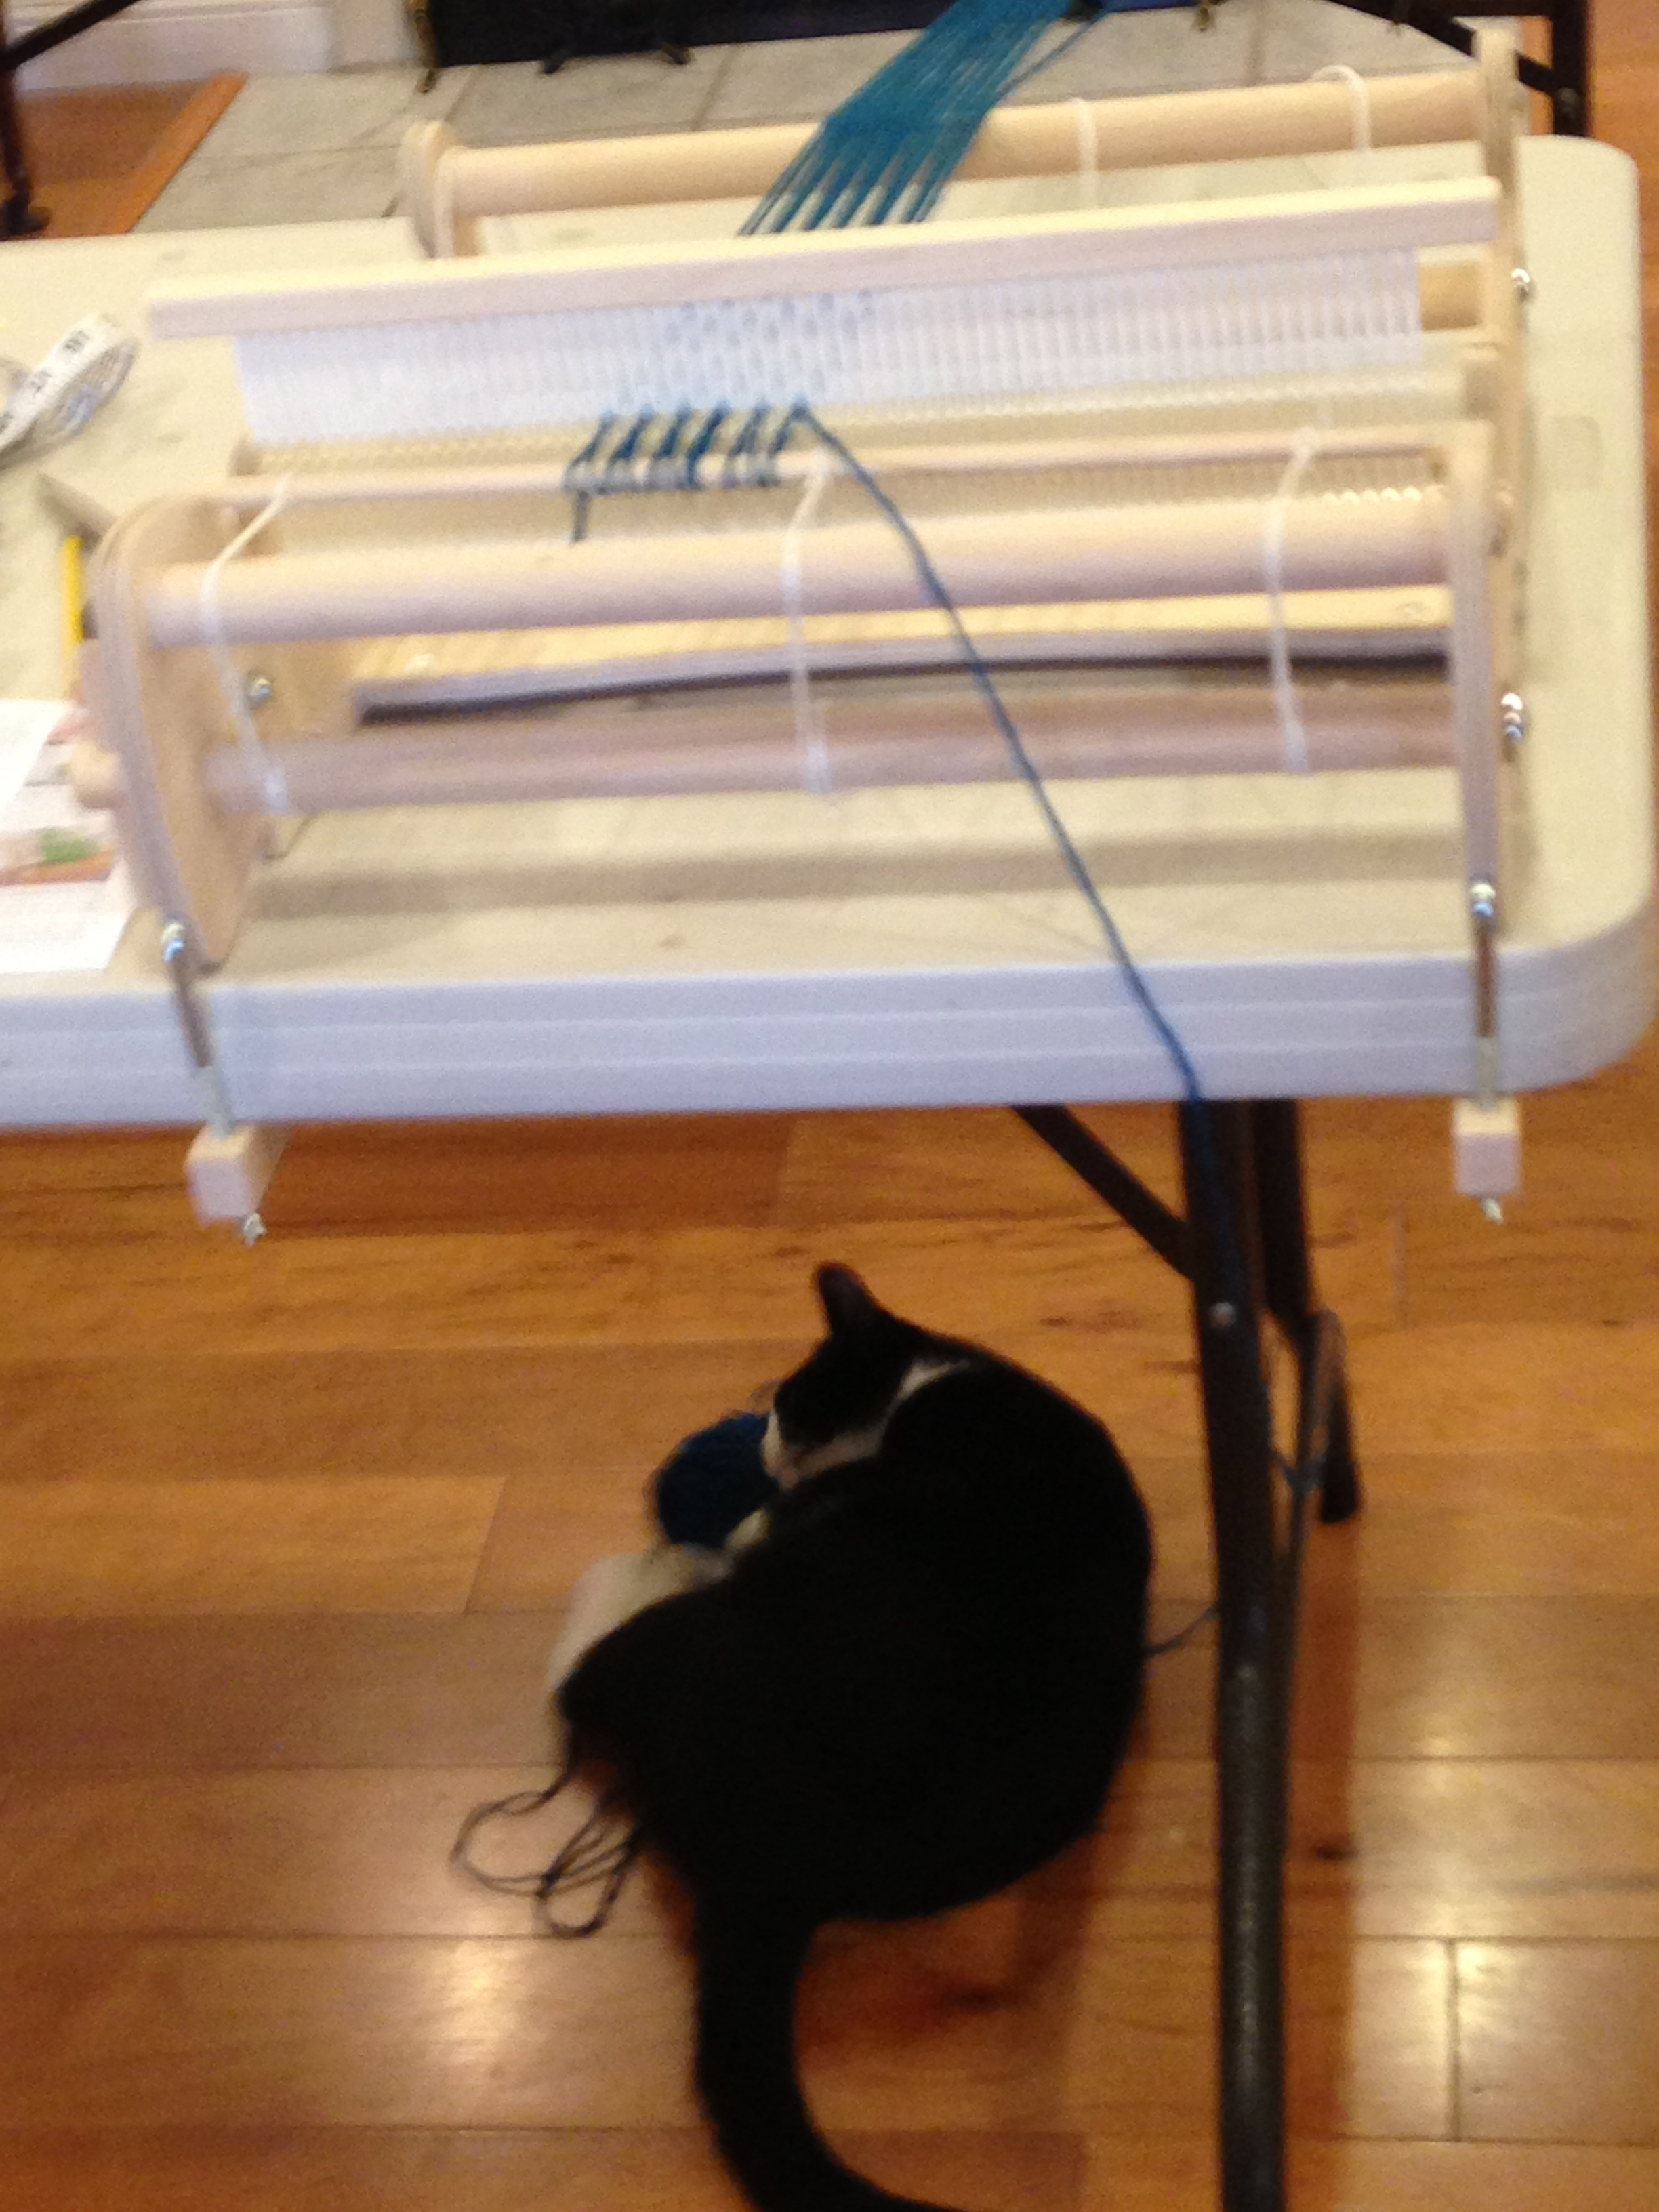 Too much help with the warping!